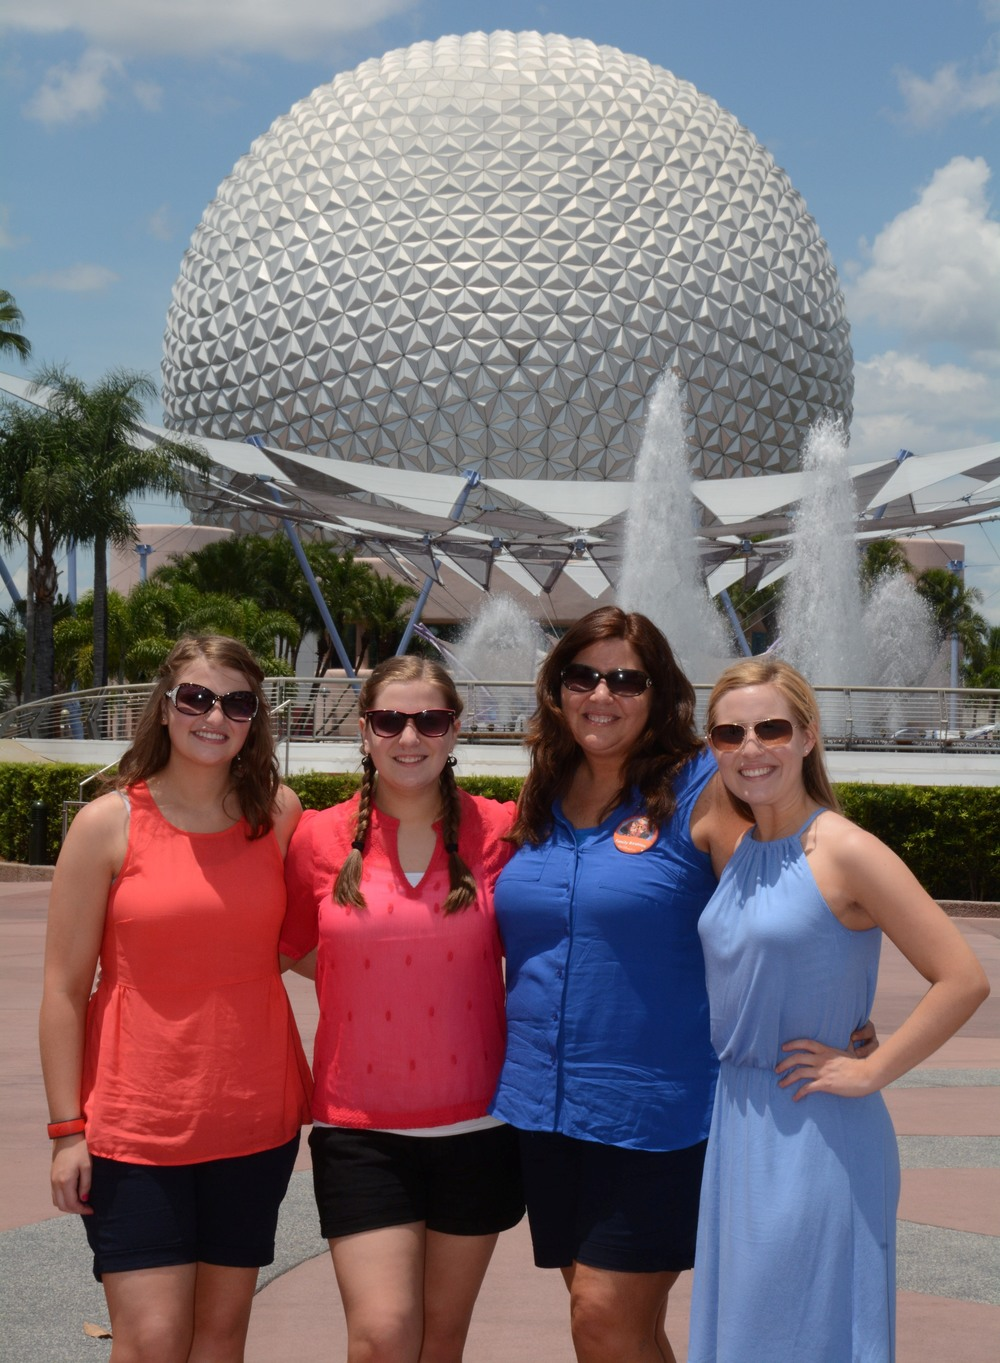 MEET Monica Bryant (second in from the right) - A TRAVEL AGENT FOCUSING IN DISNEY DESTINATIONS AT BUILD A BETTER MOUSE TRIP. Monica CAN HELP YOU PLAN YOUR DISNEY WORLD, DISNEYLAND, DISNEY CRUISE LINE, ADVENTURES BY DISNEY OR AULANI VACATION.